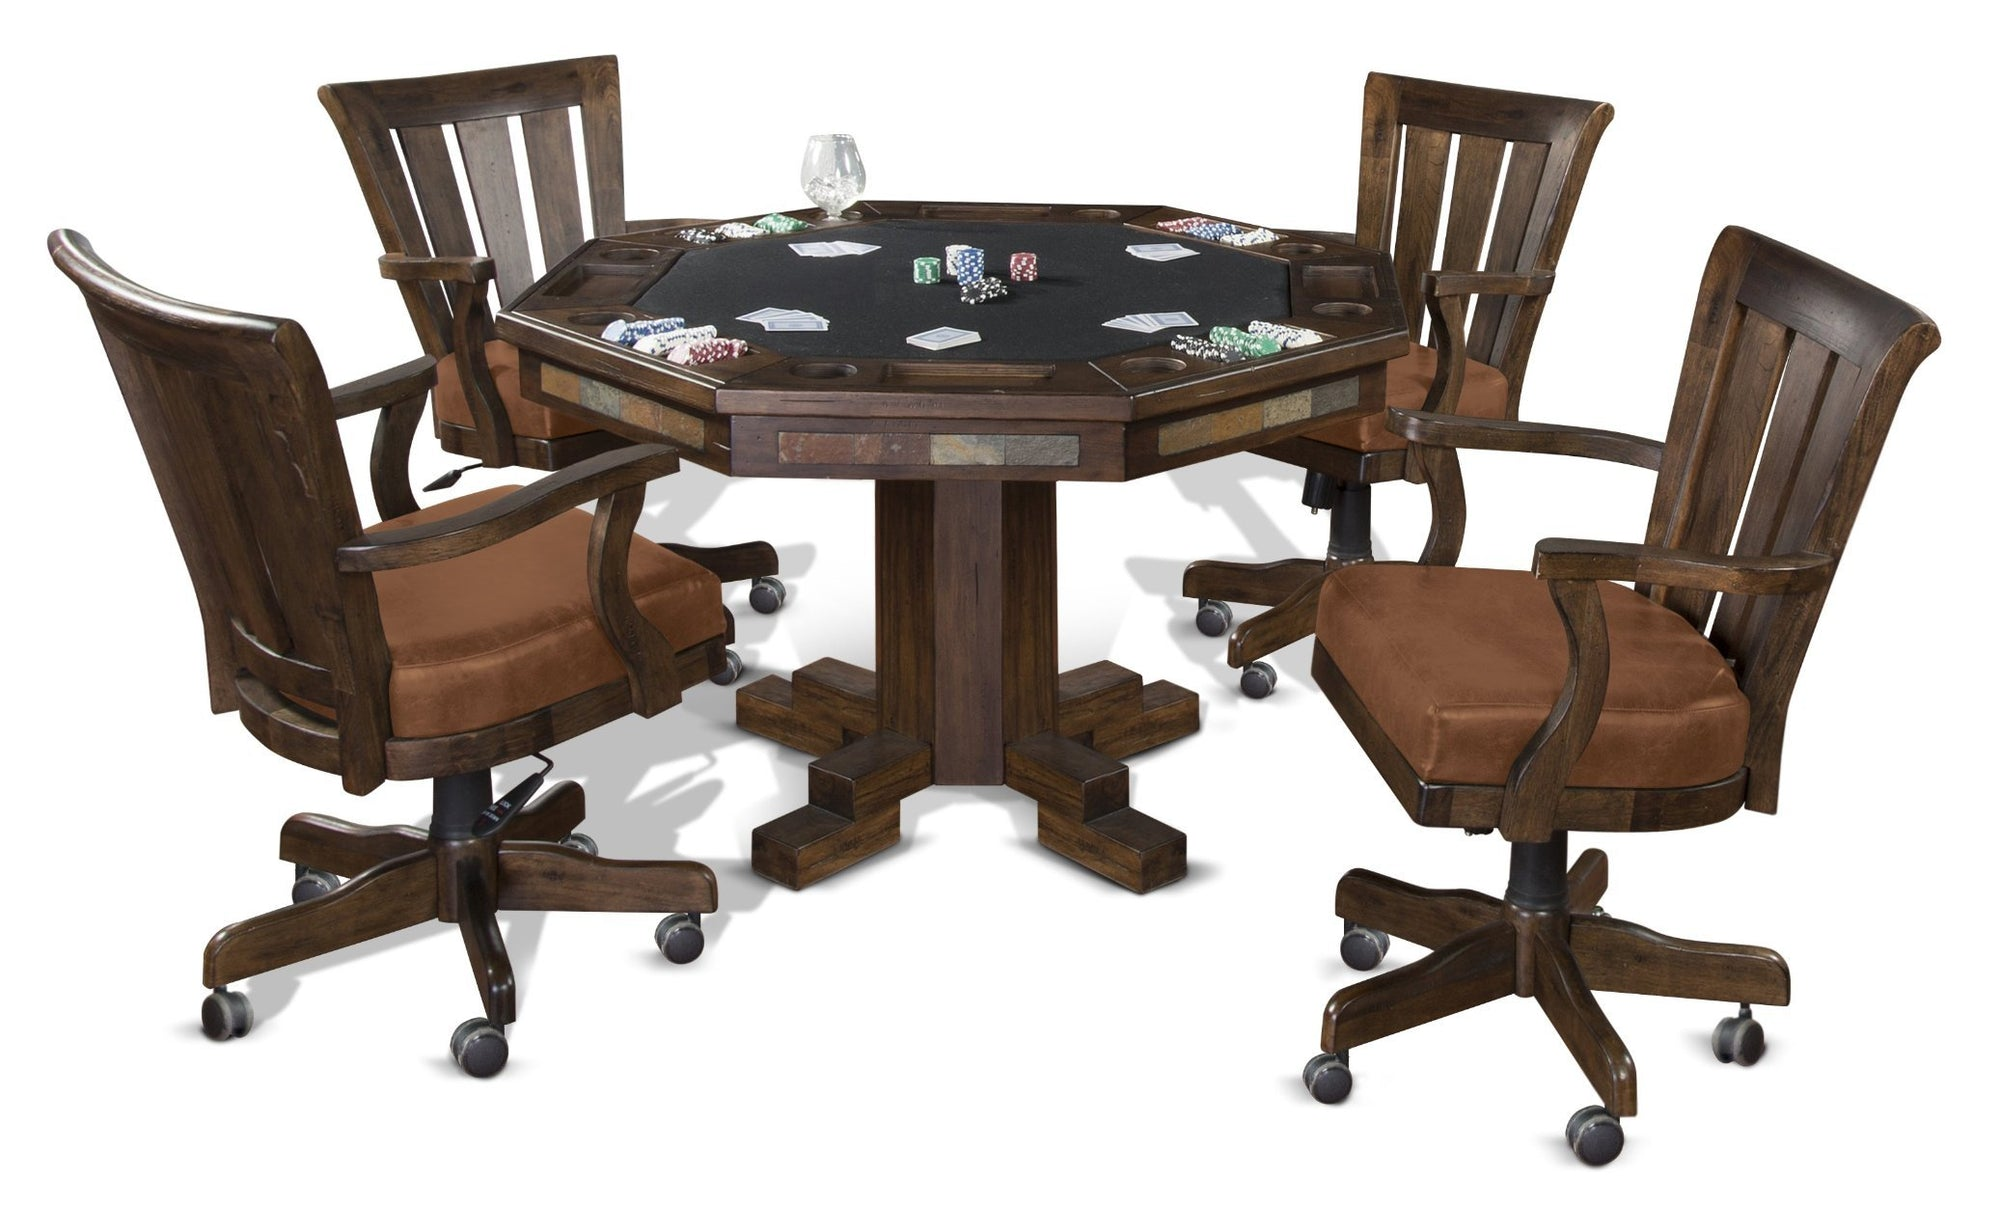 Sunny Designs Poker Table Set Santa Fe (Pedestal Base) with Matching Game Chairs